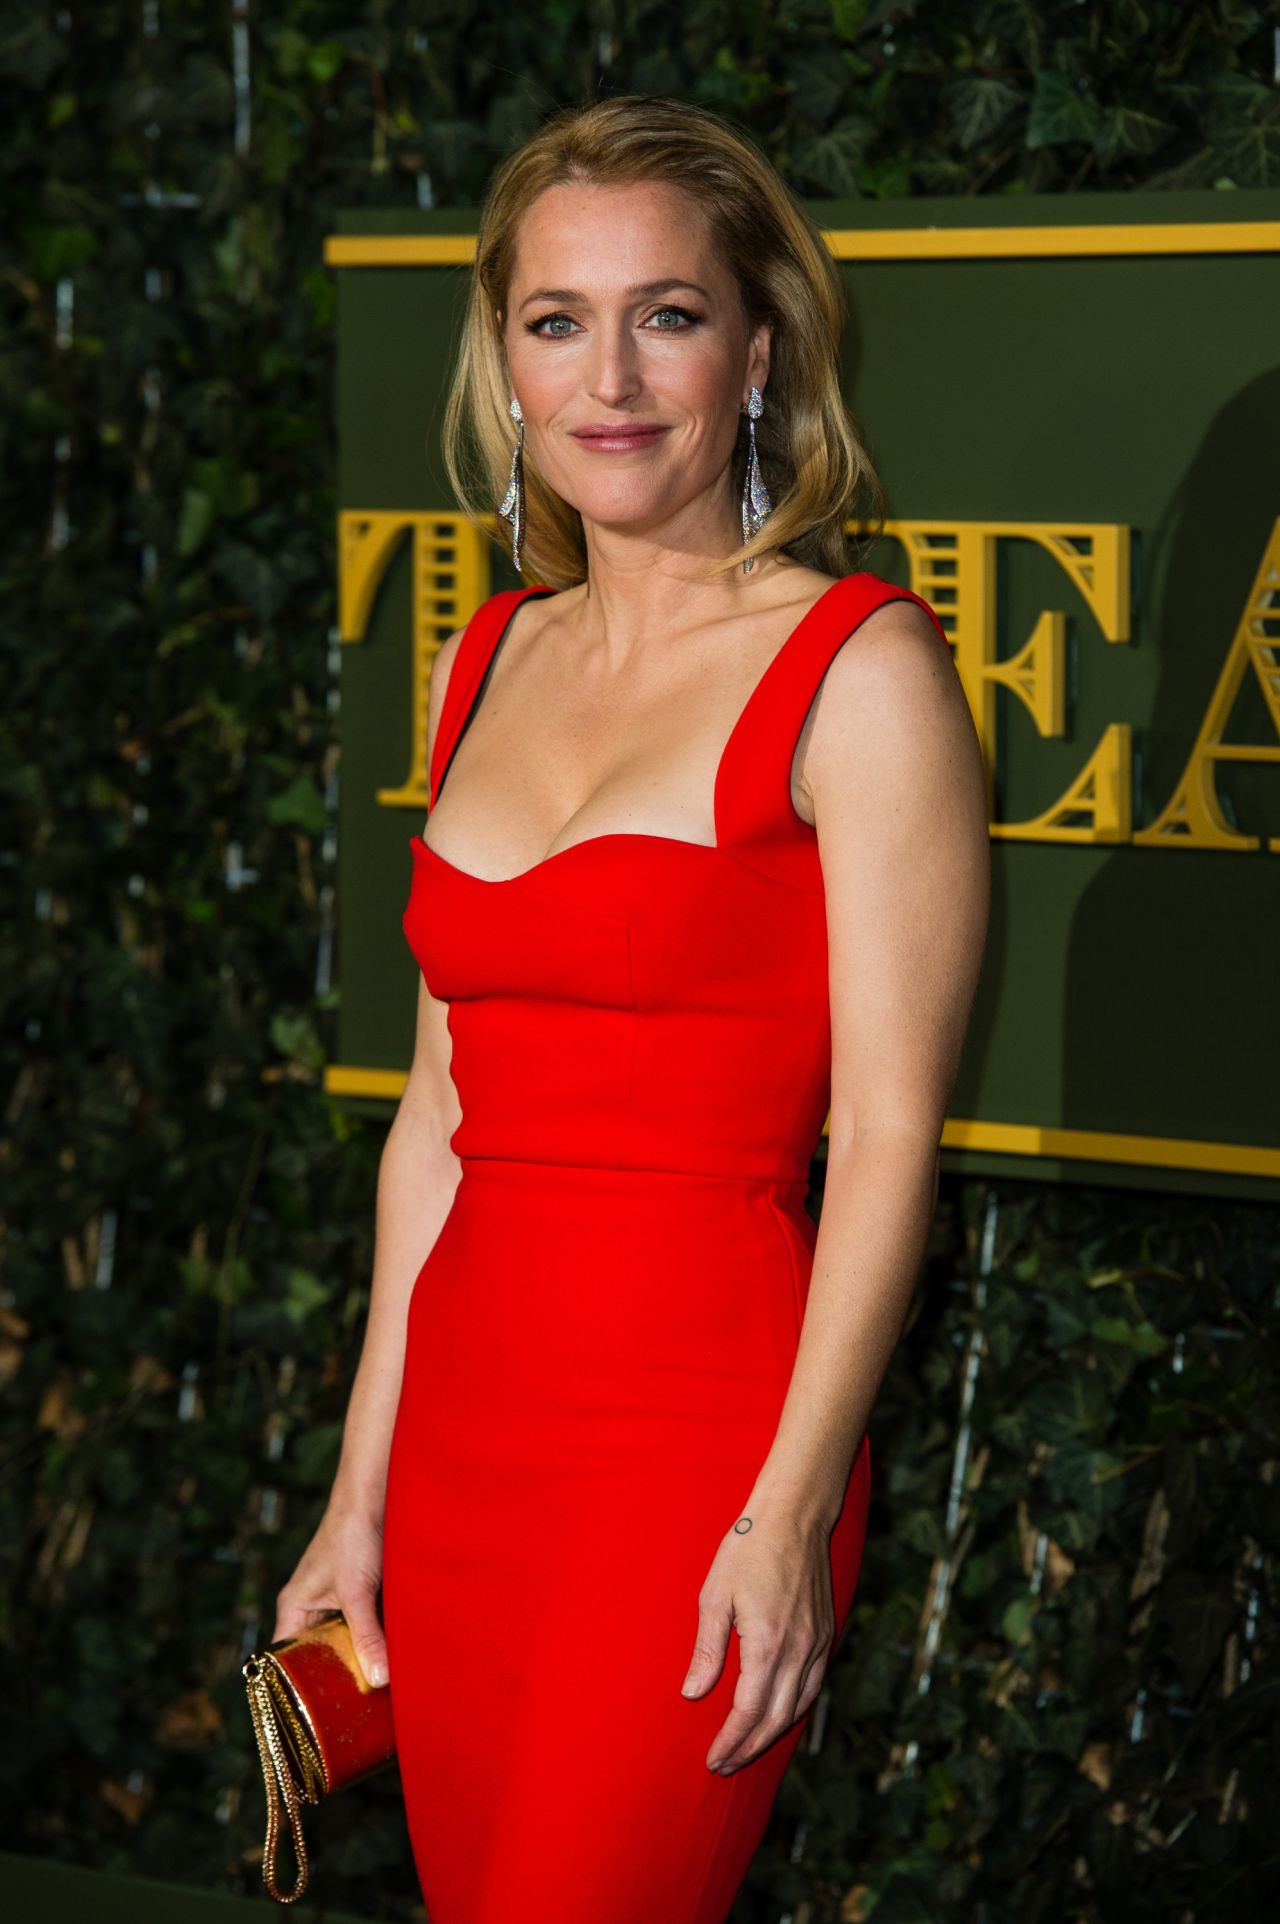 Gillian Anderson nudes (84 images) Boobs, Snapchat, lingerie